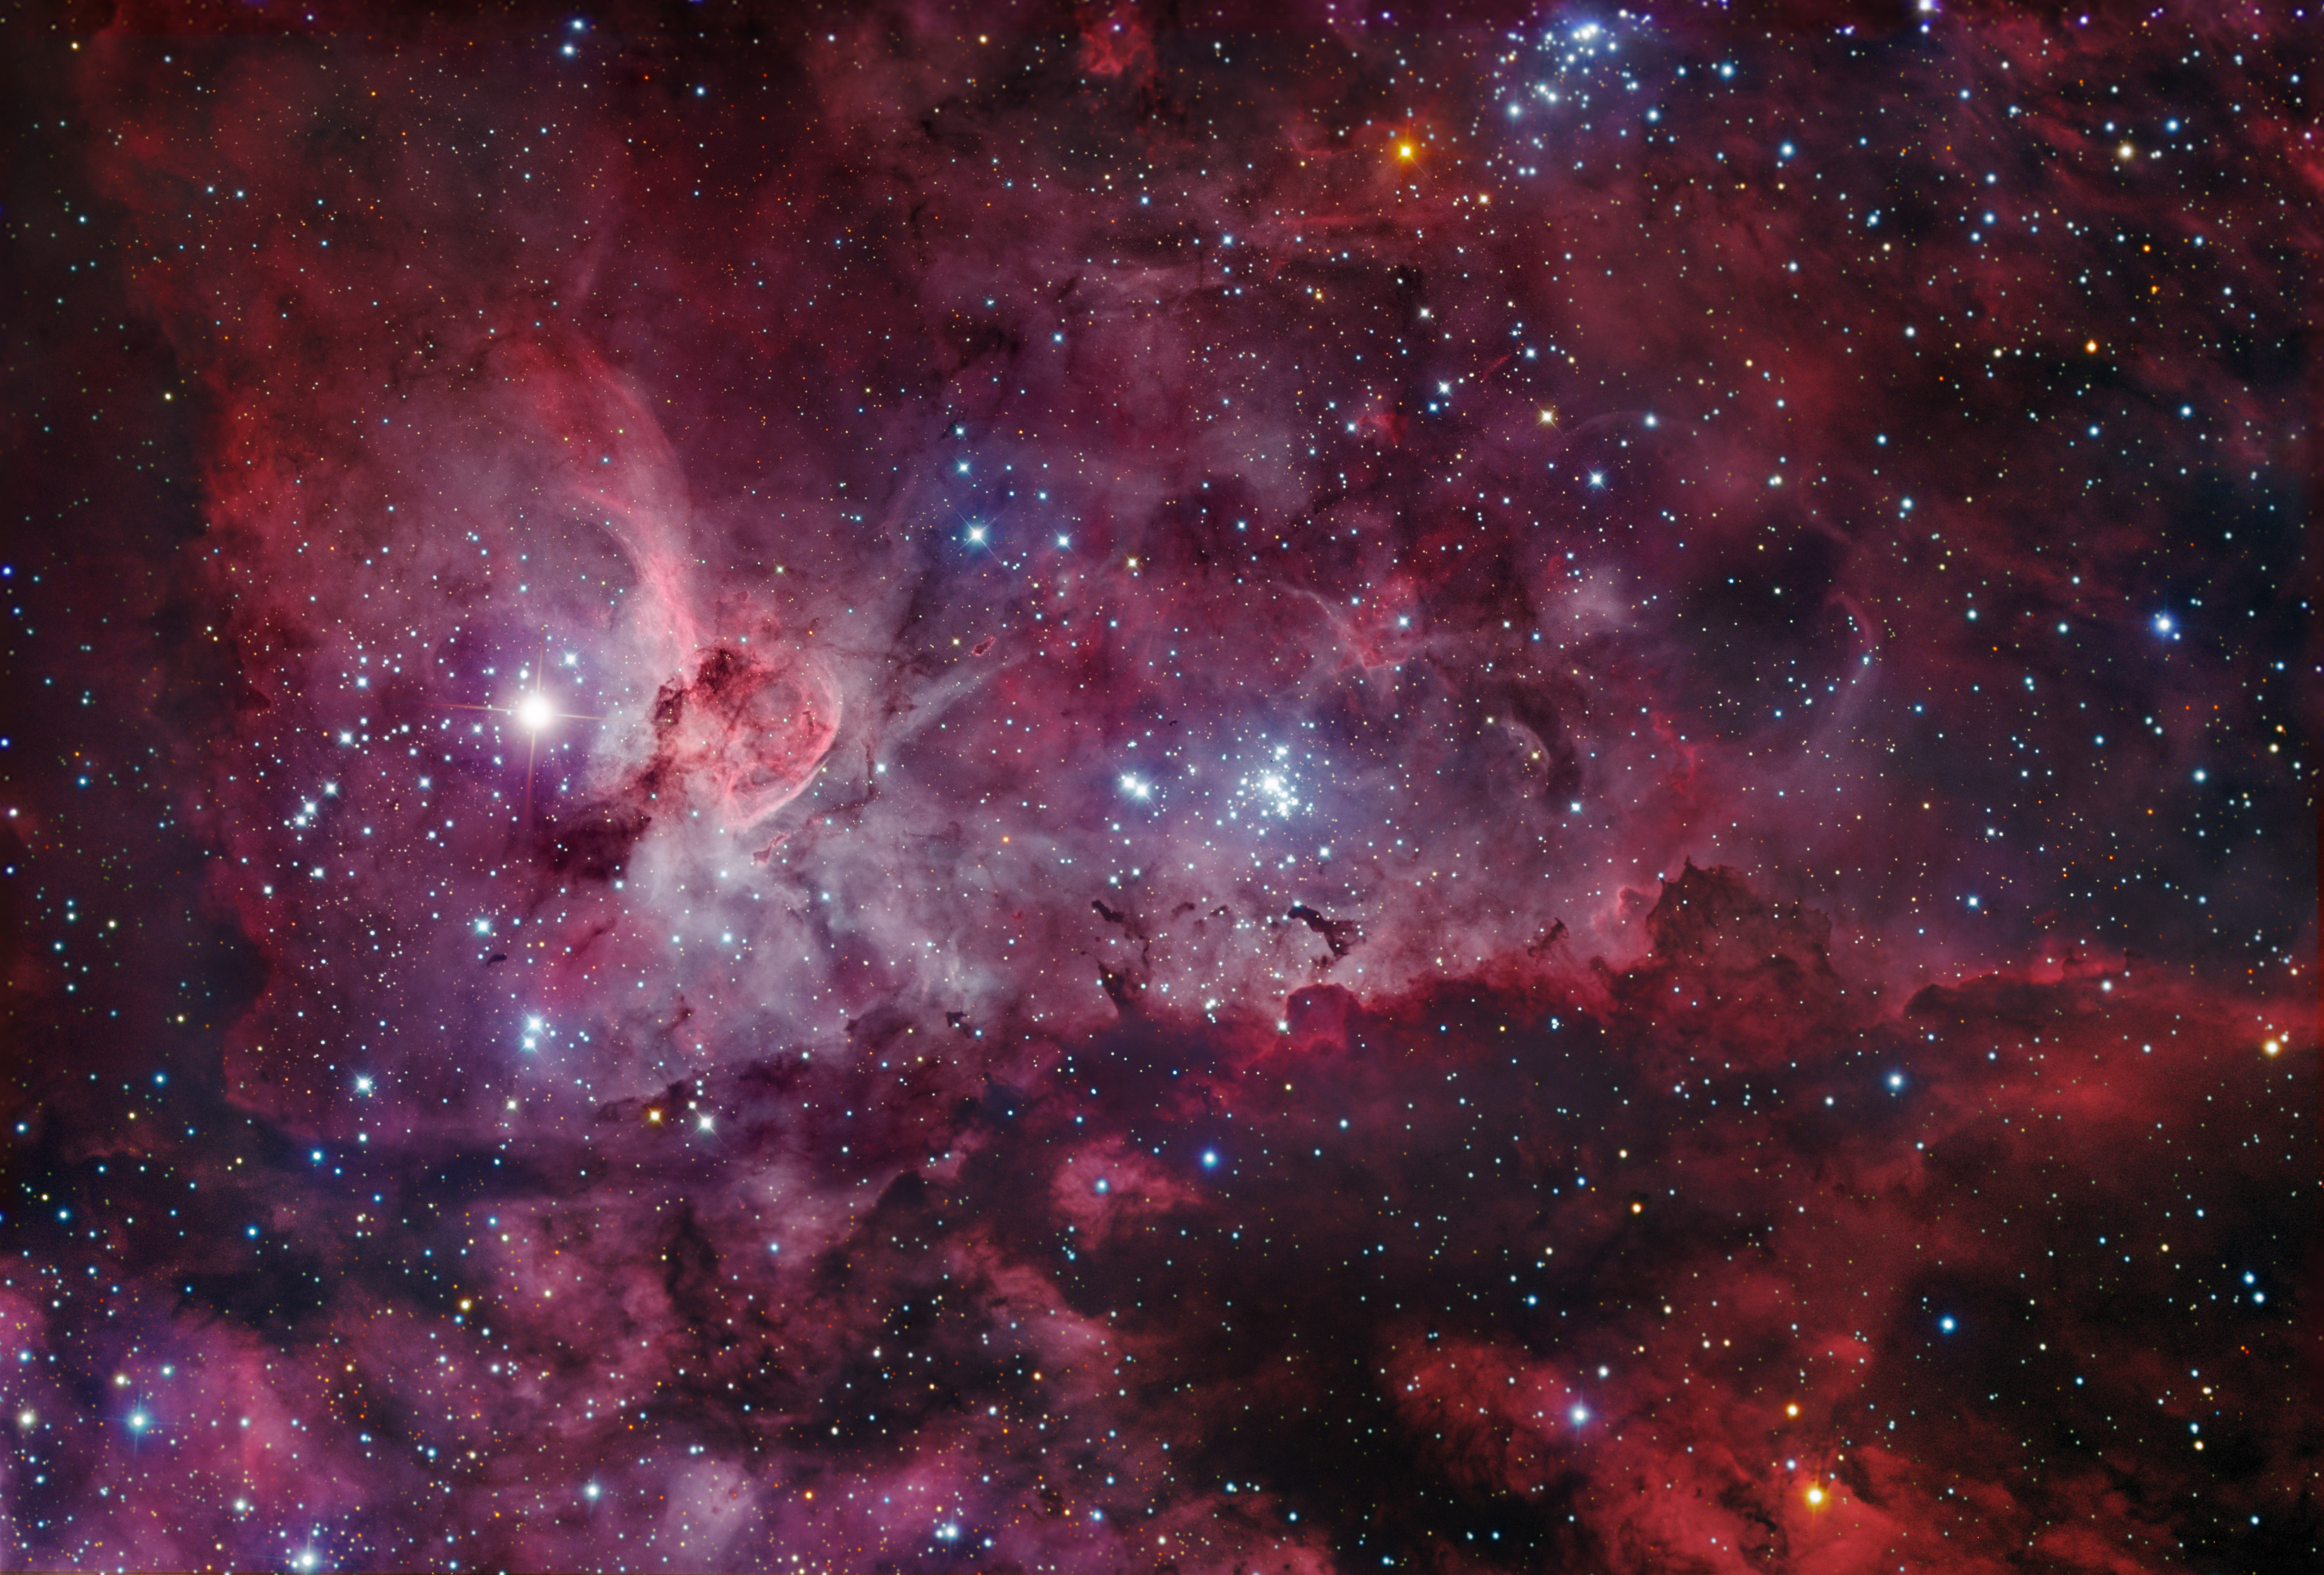 carina nebula hd - photo #24